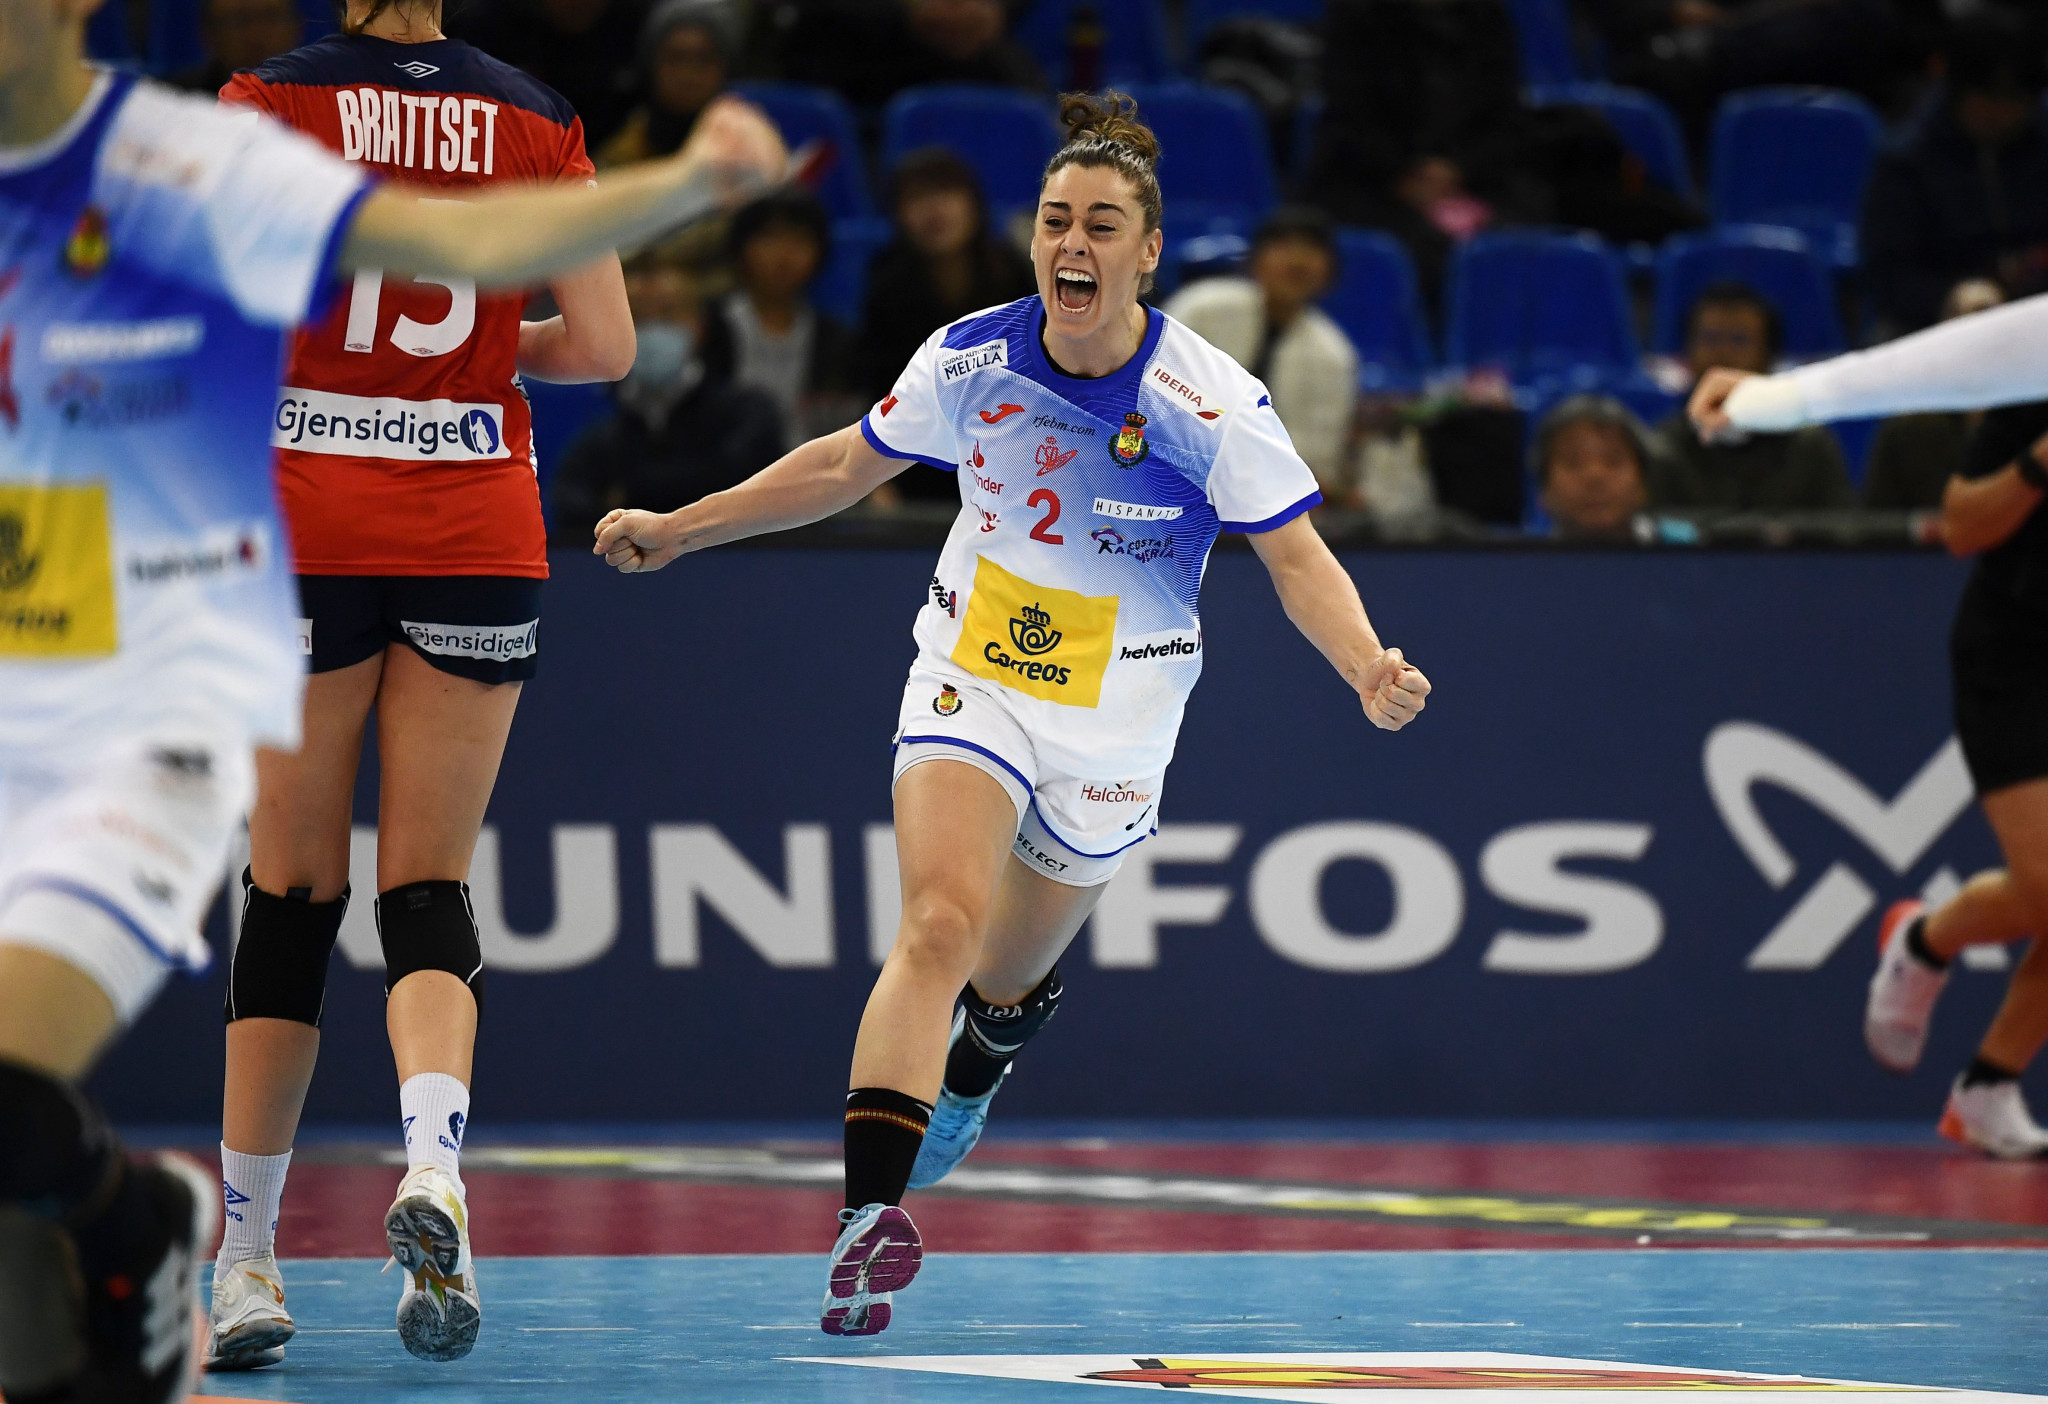 Spain will host one of the three women's qualifiers ©Getty Images